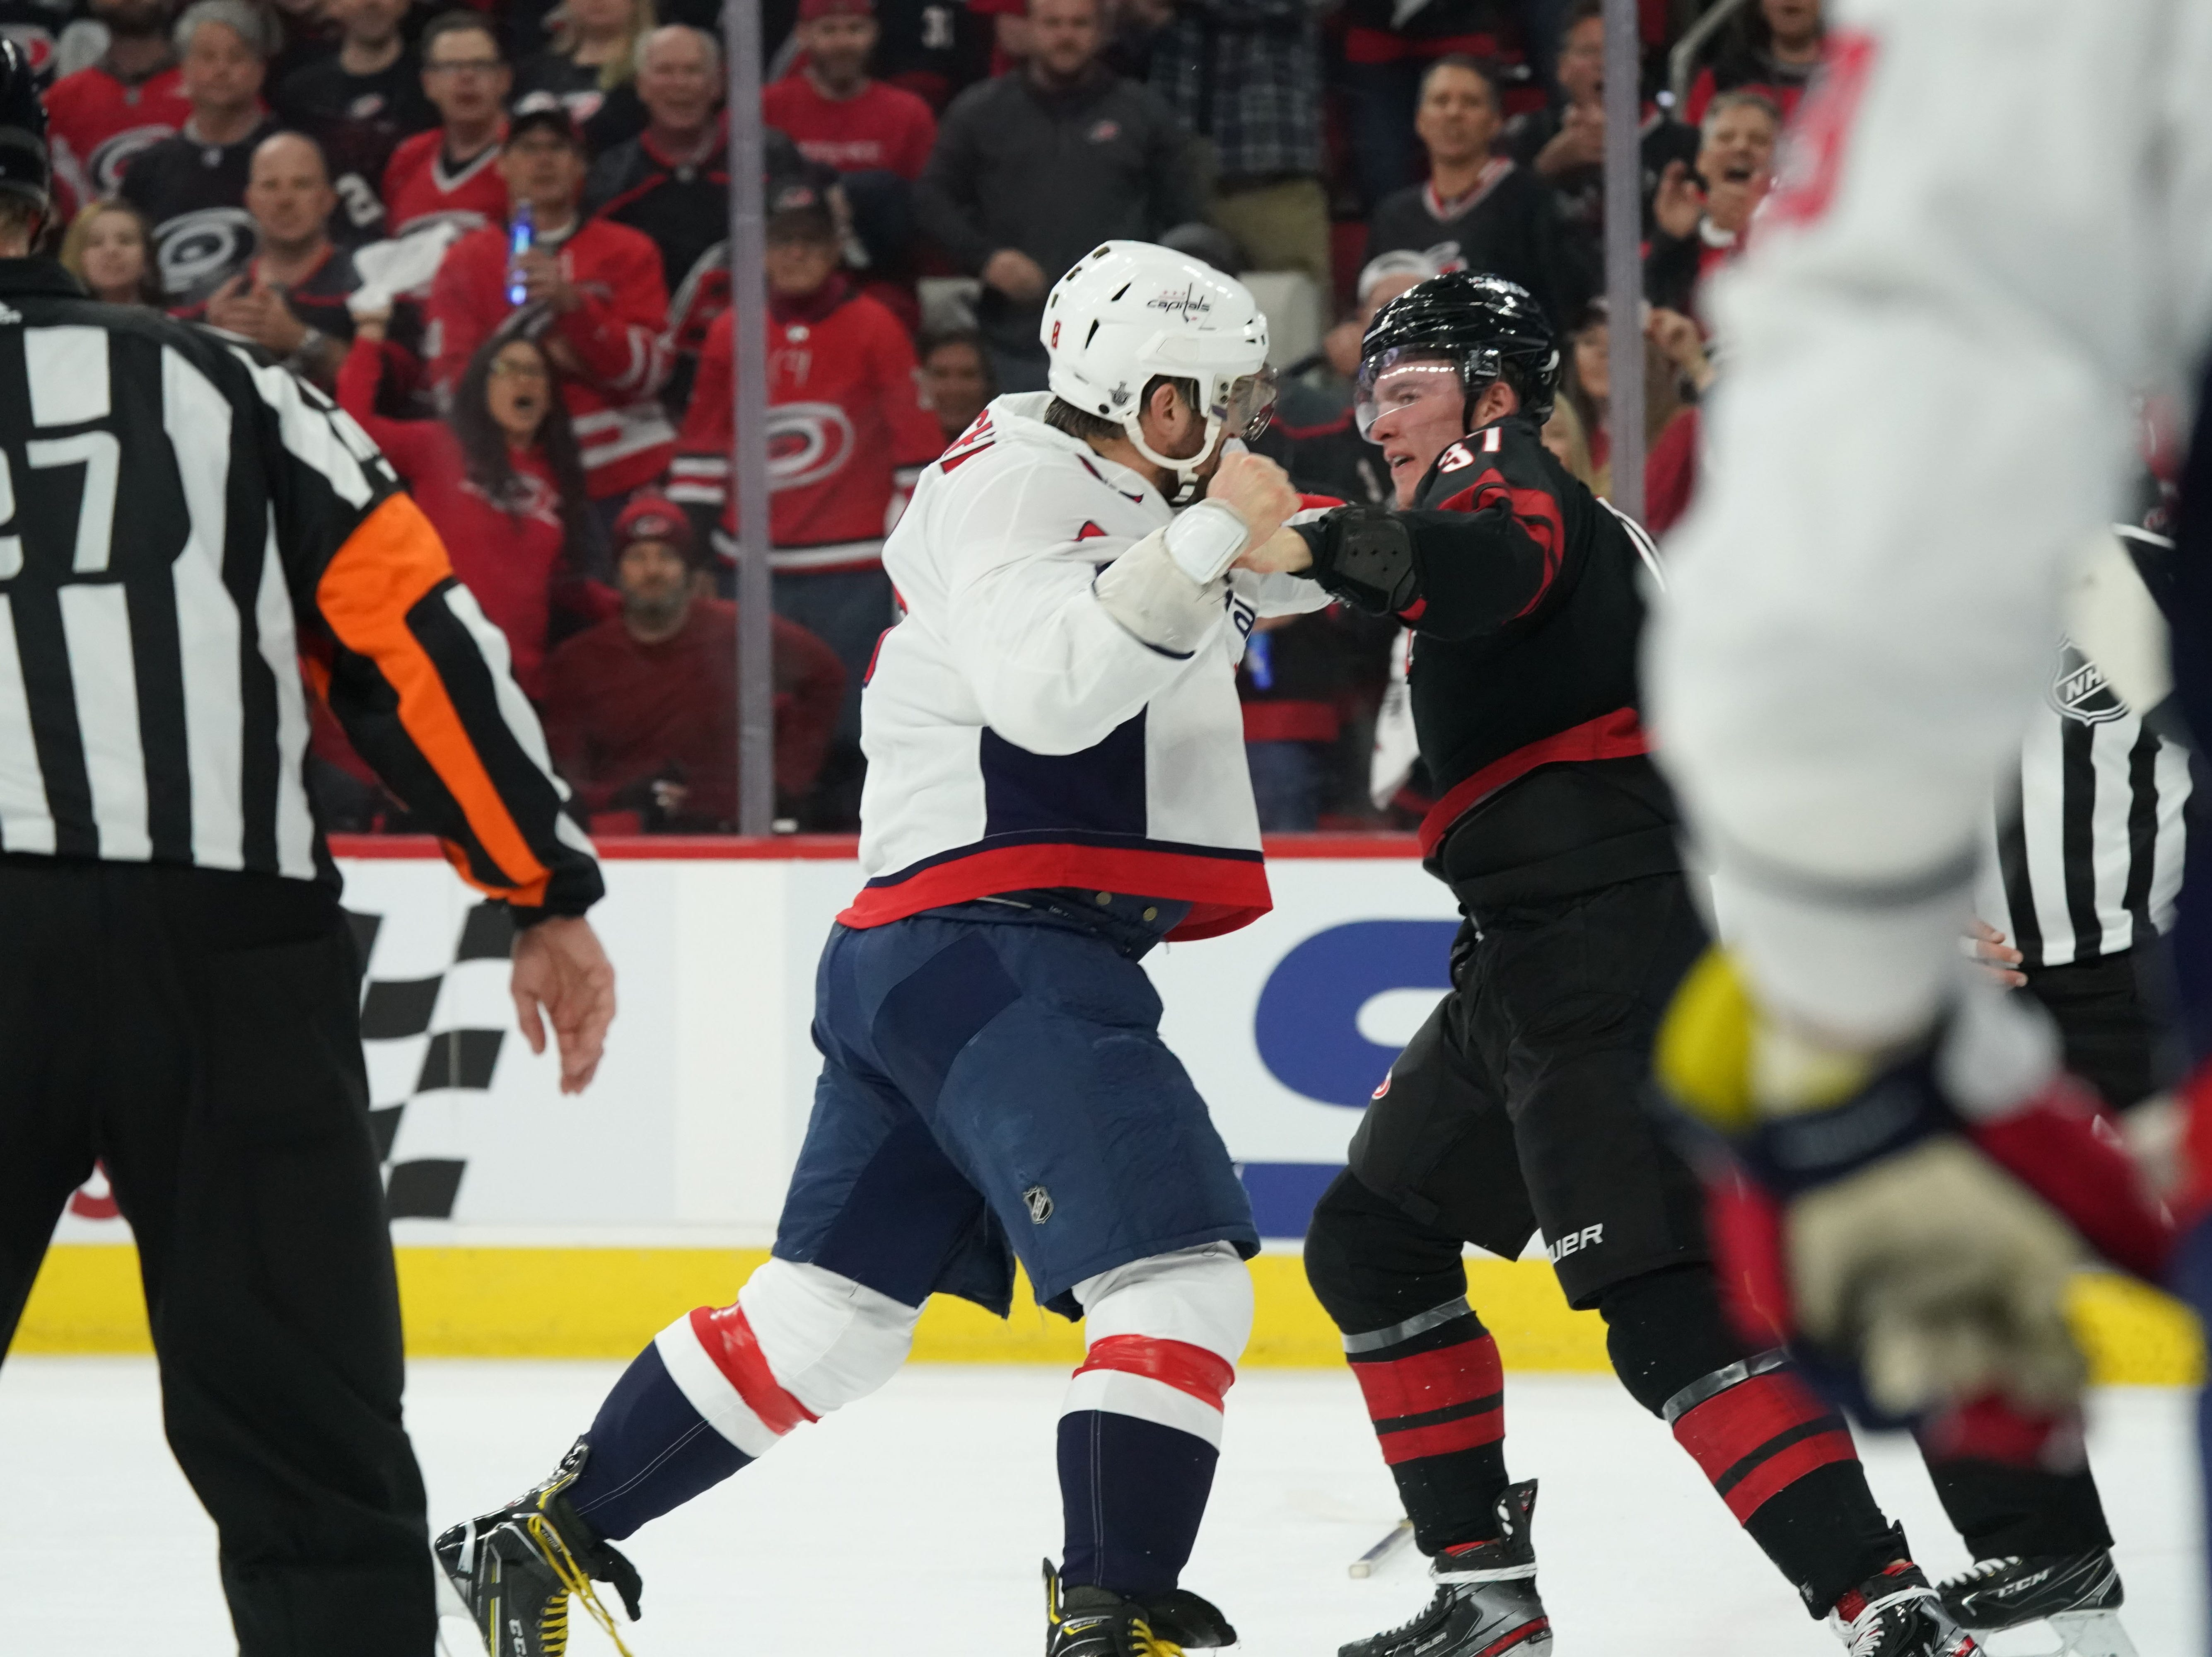 First round: Washington Capitals forward Alex Ovechkin (8) fights Carolina Hurricanes forward Andrei Svechnikov (37) during the first period of Game 3.